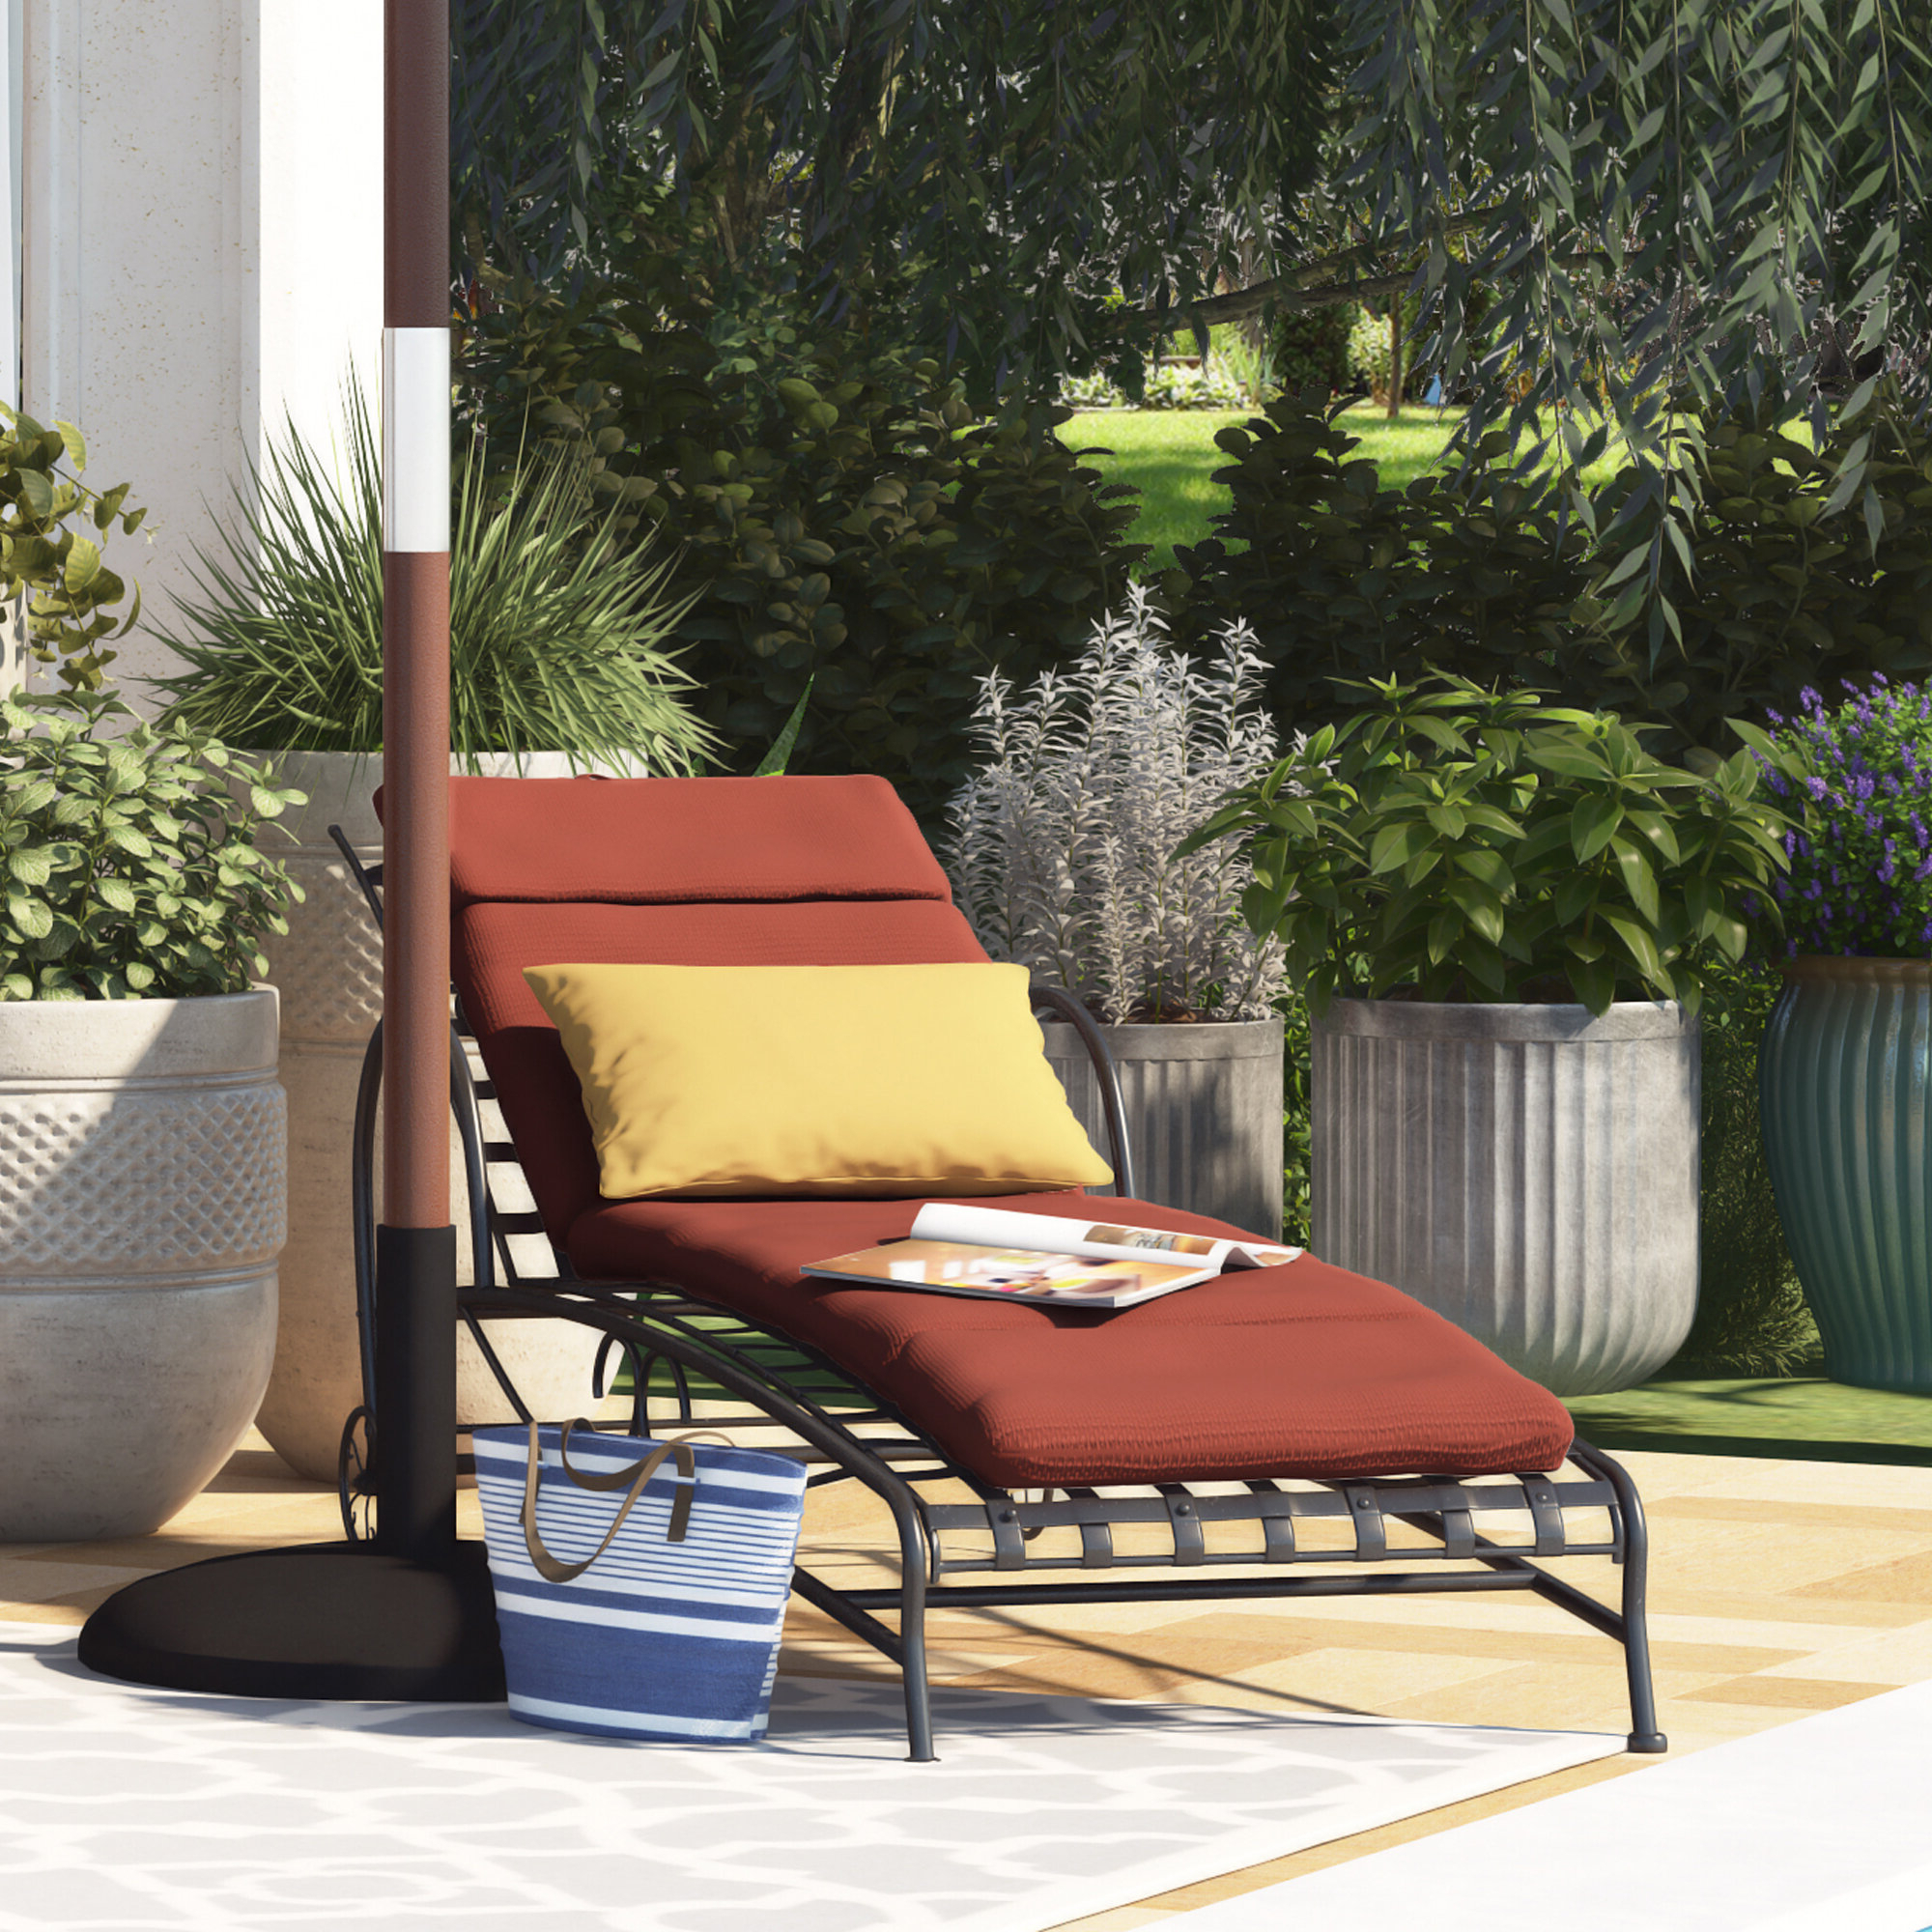 Polyester Indoor/outdoor Chaise Lounge Cushion Intended For Most Recent Indoor Outdoor Textured Bright Chaise Lounges With Sunbrella Fabric (Gallery 18 of 25)